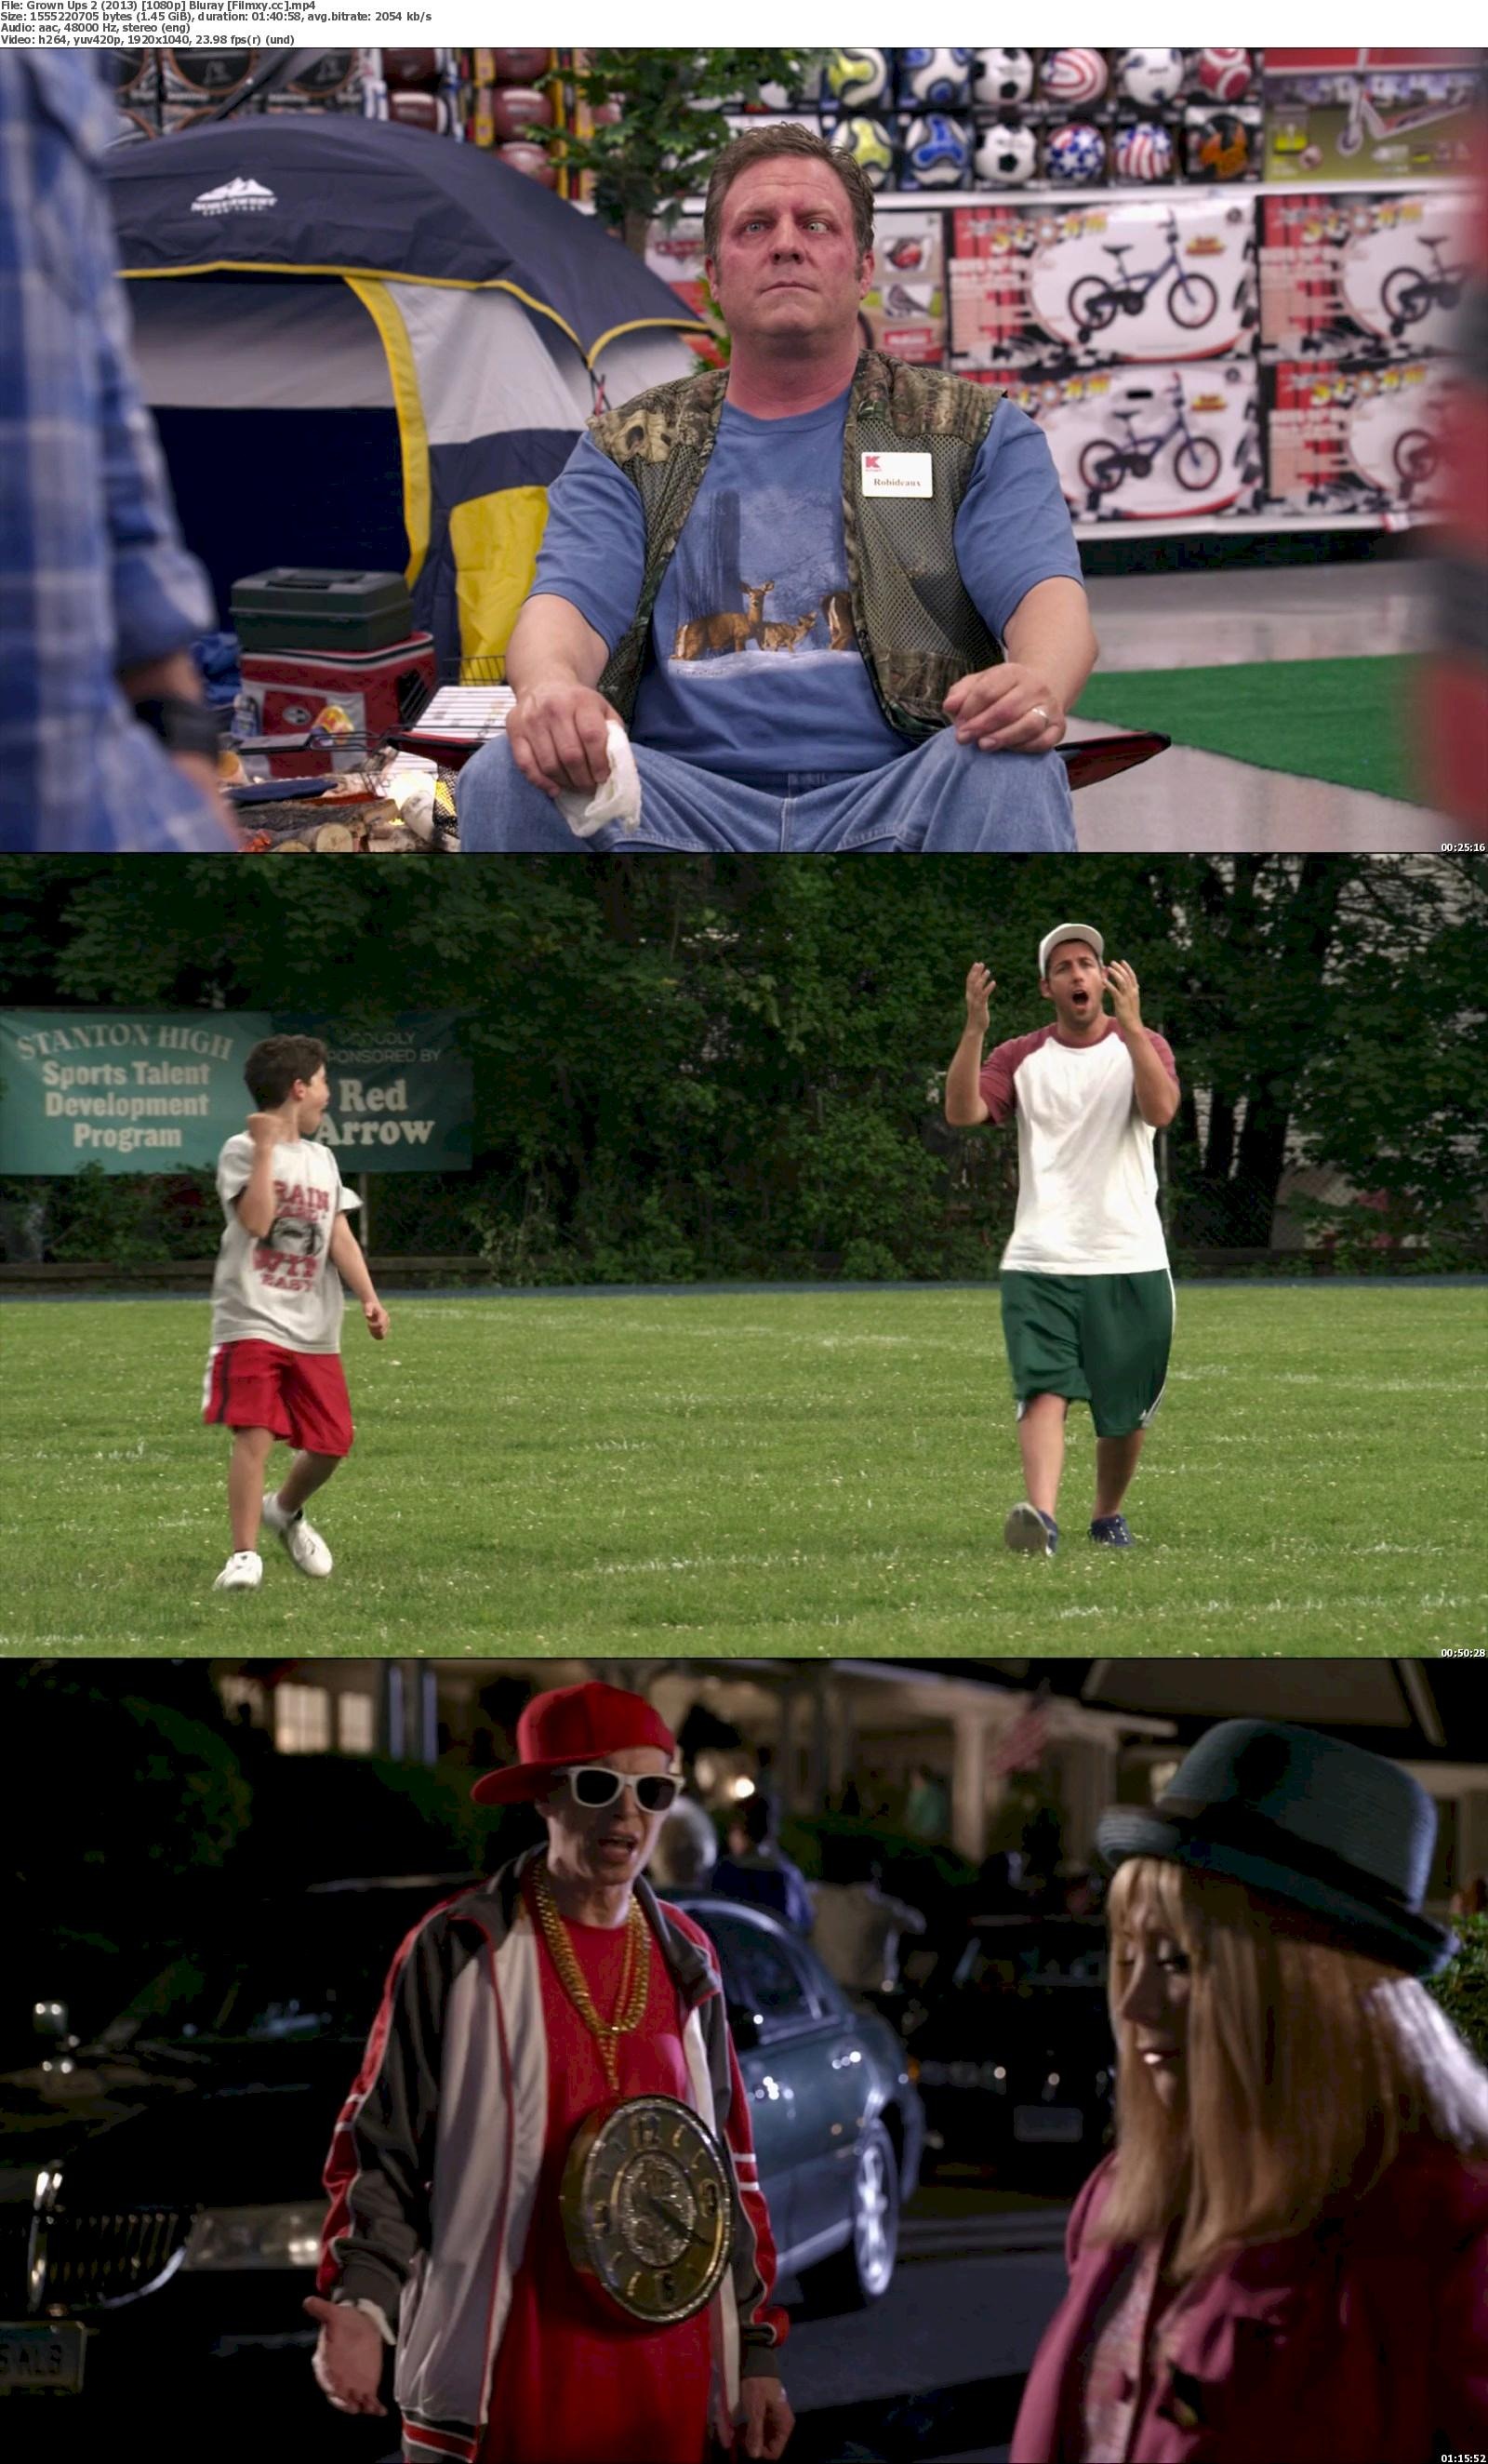 Grown Ups 2 (2013) 720p & 1080p Bluray Free Download 1080p Screenshot